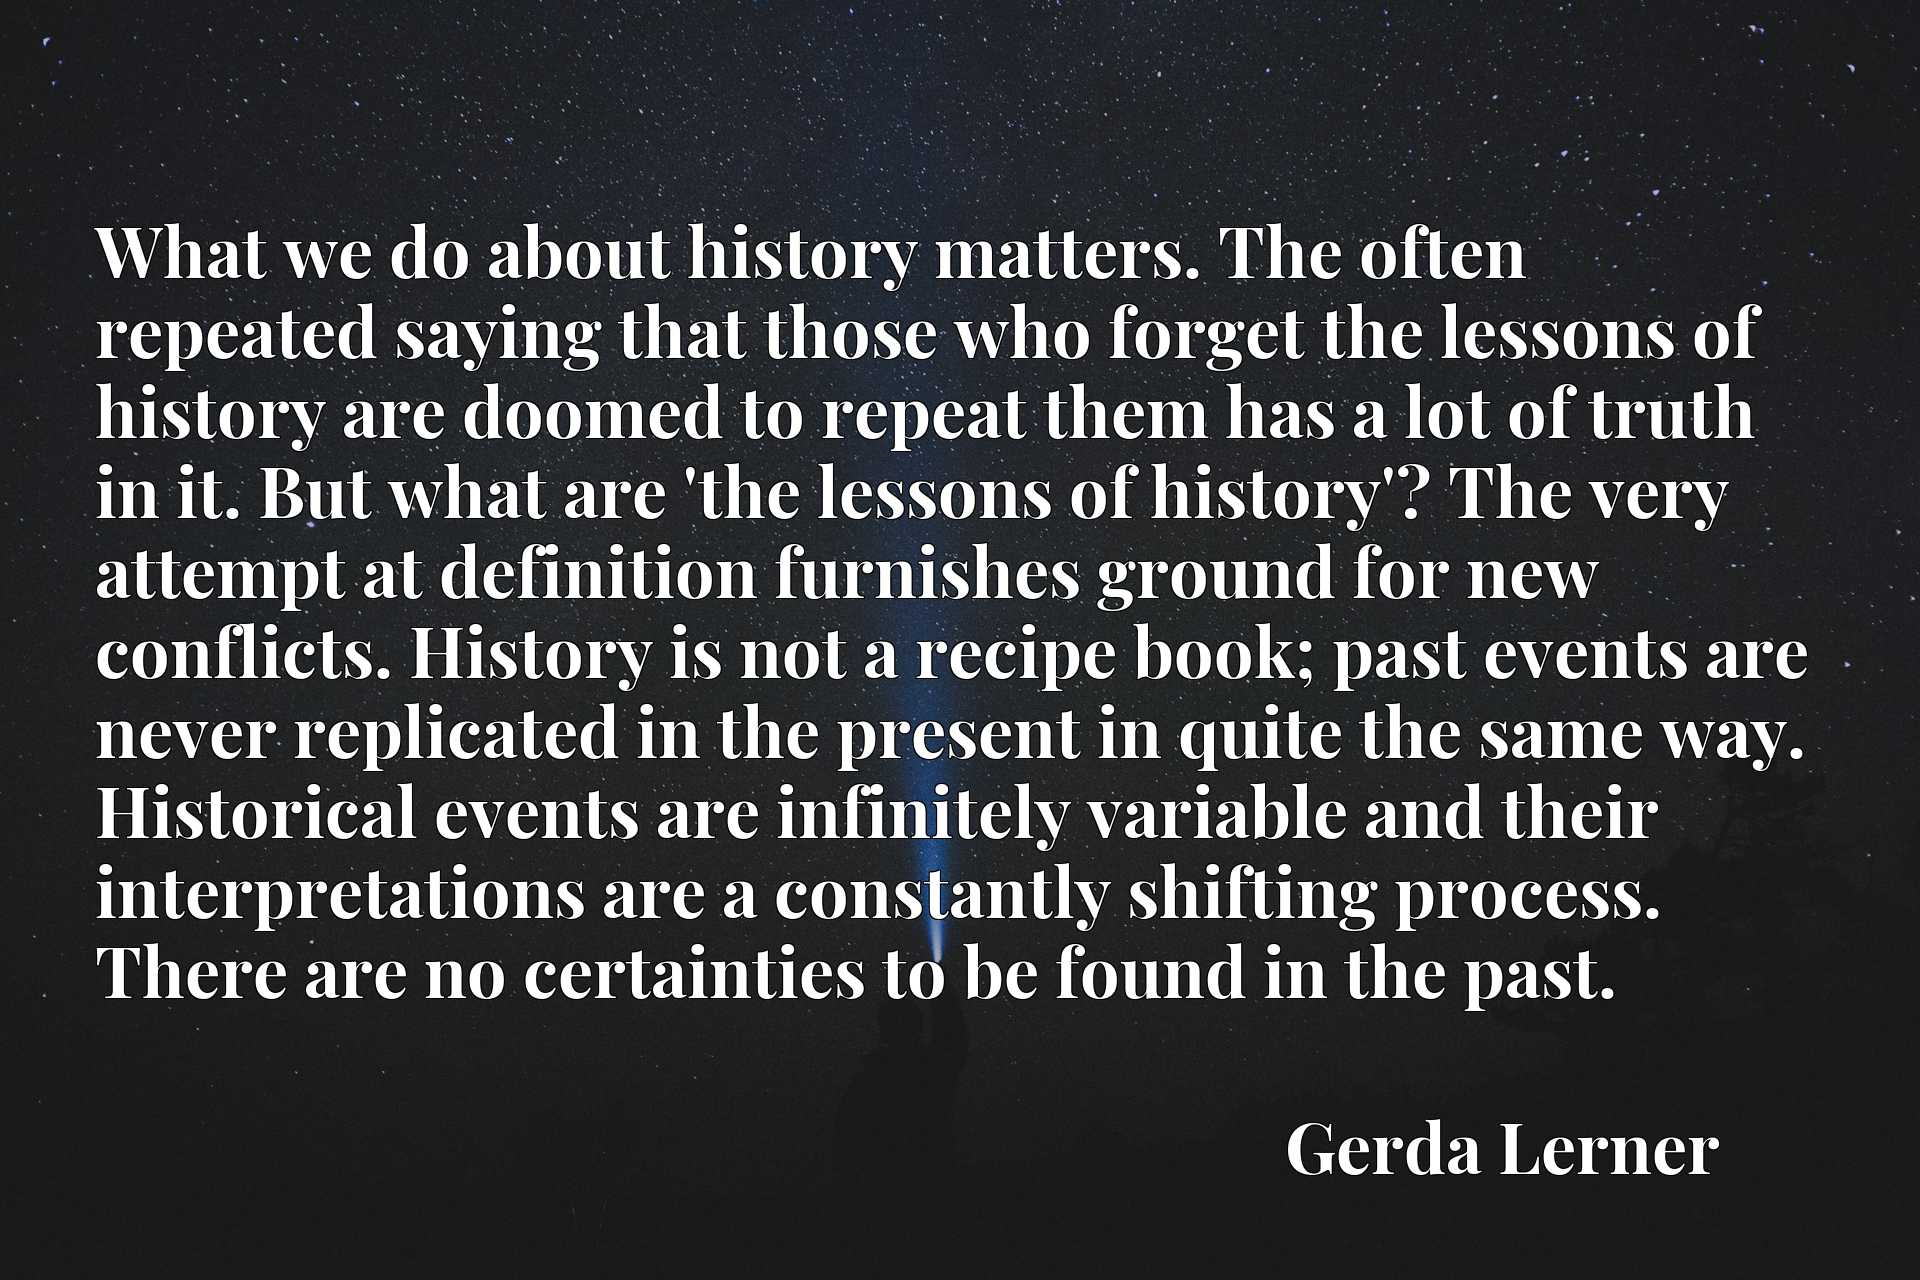 What we do about history matters. The often repeated saying that those who forget the lessons of history are doomed to repeat them has a lot of truth in it. But what are 'the lessons of history'? The very attempt at definition furnishes ground for new conflicts. History is not a recipe book; past events are never replicated in the present in quite the same way. Historical events are infinitely variable and their interpretations are a constantly shifting process. There are no certainties to be found in the past.